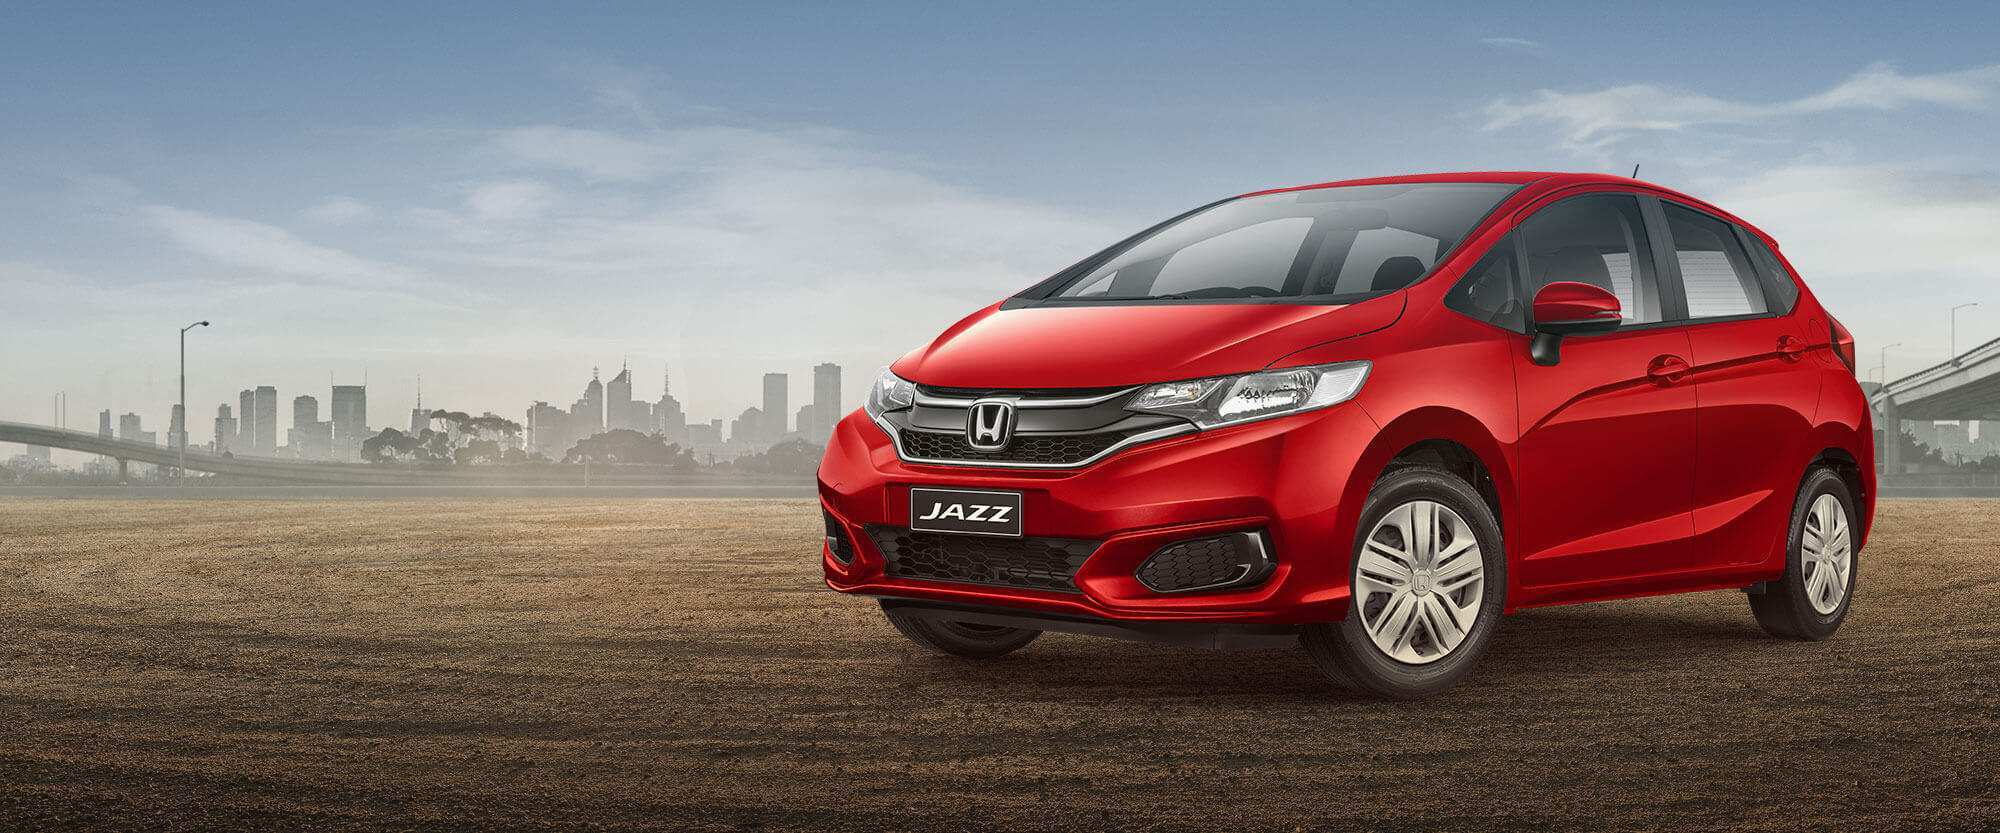 77 Concept of Best Honda Jazz 2019 Australia First Drive Specs by Best Honda Jazz 2019 Australia First Drive